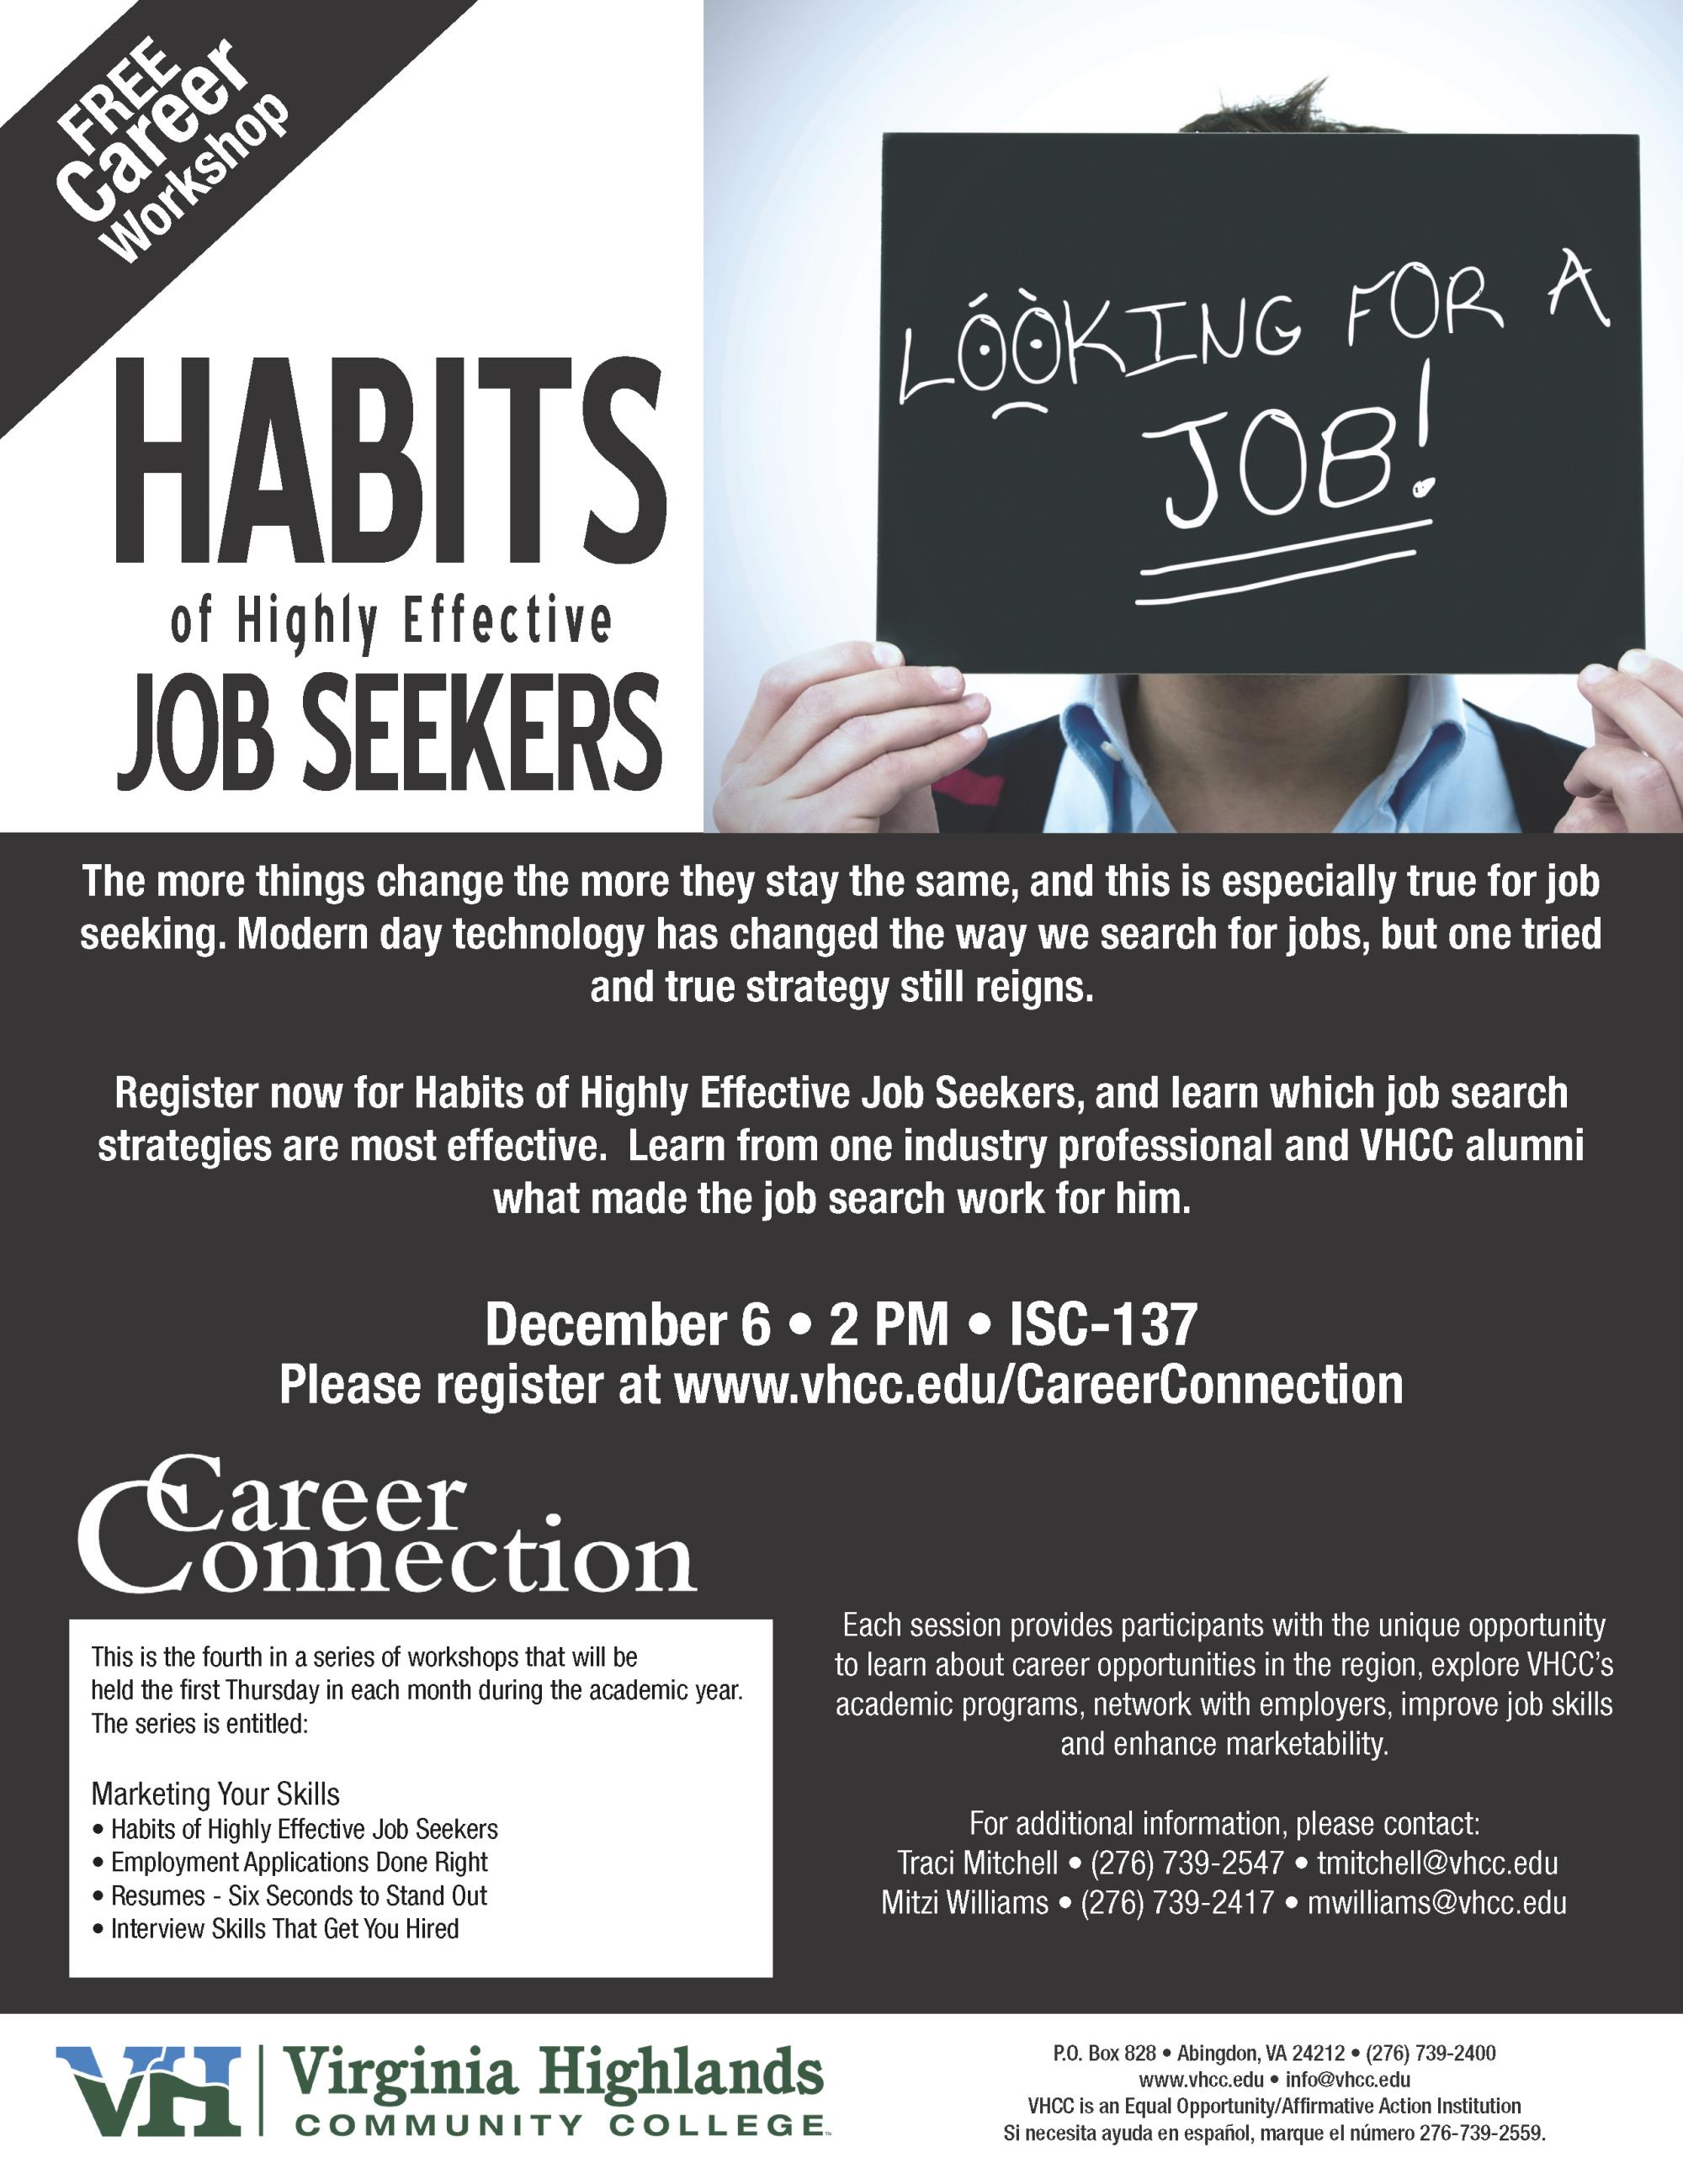 Career Connection - Habits of Highly Effective Job Seekers